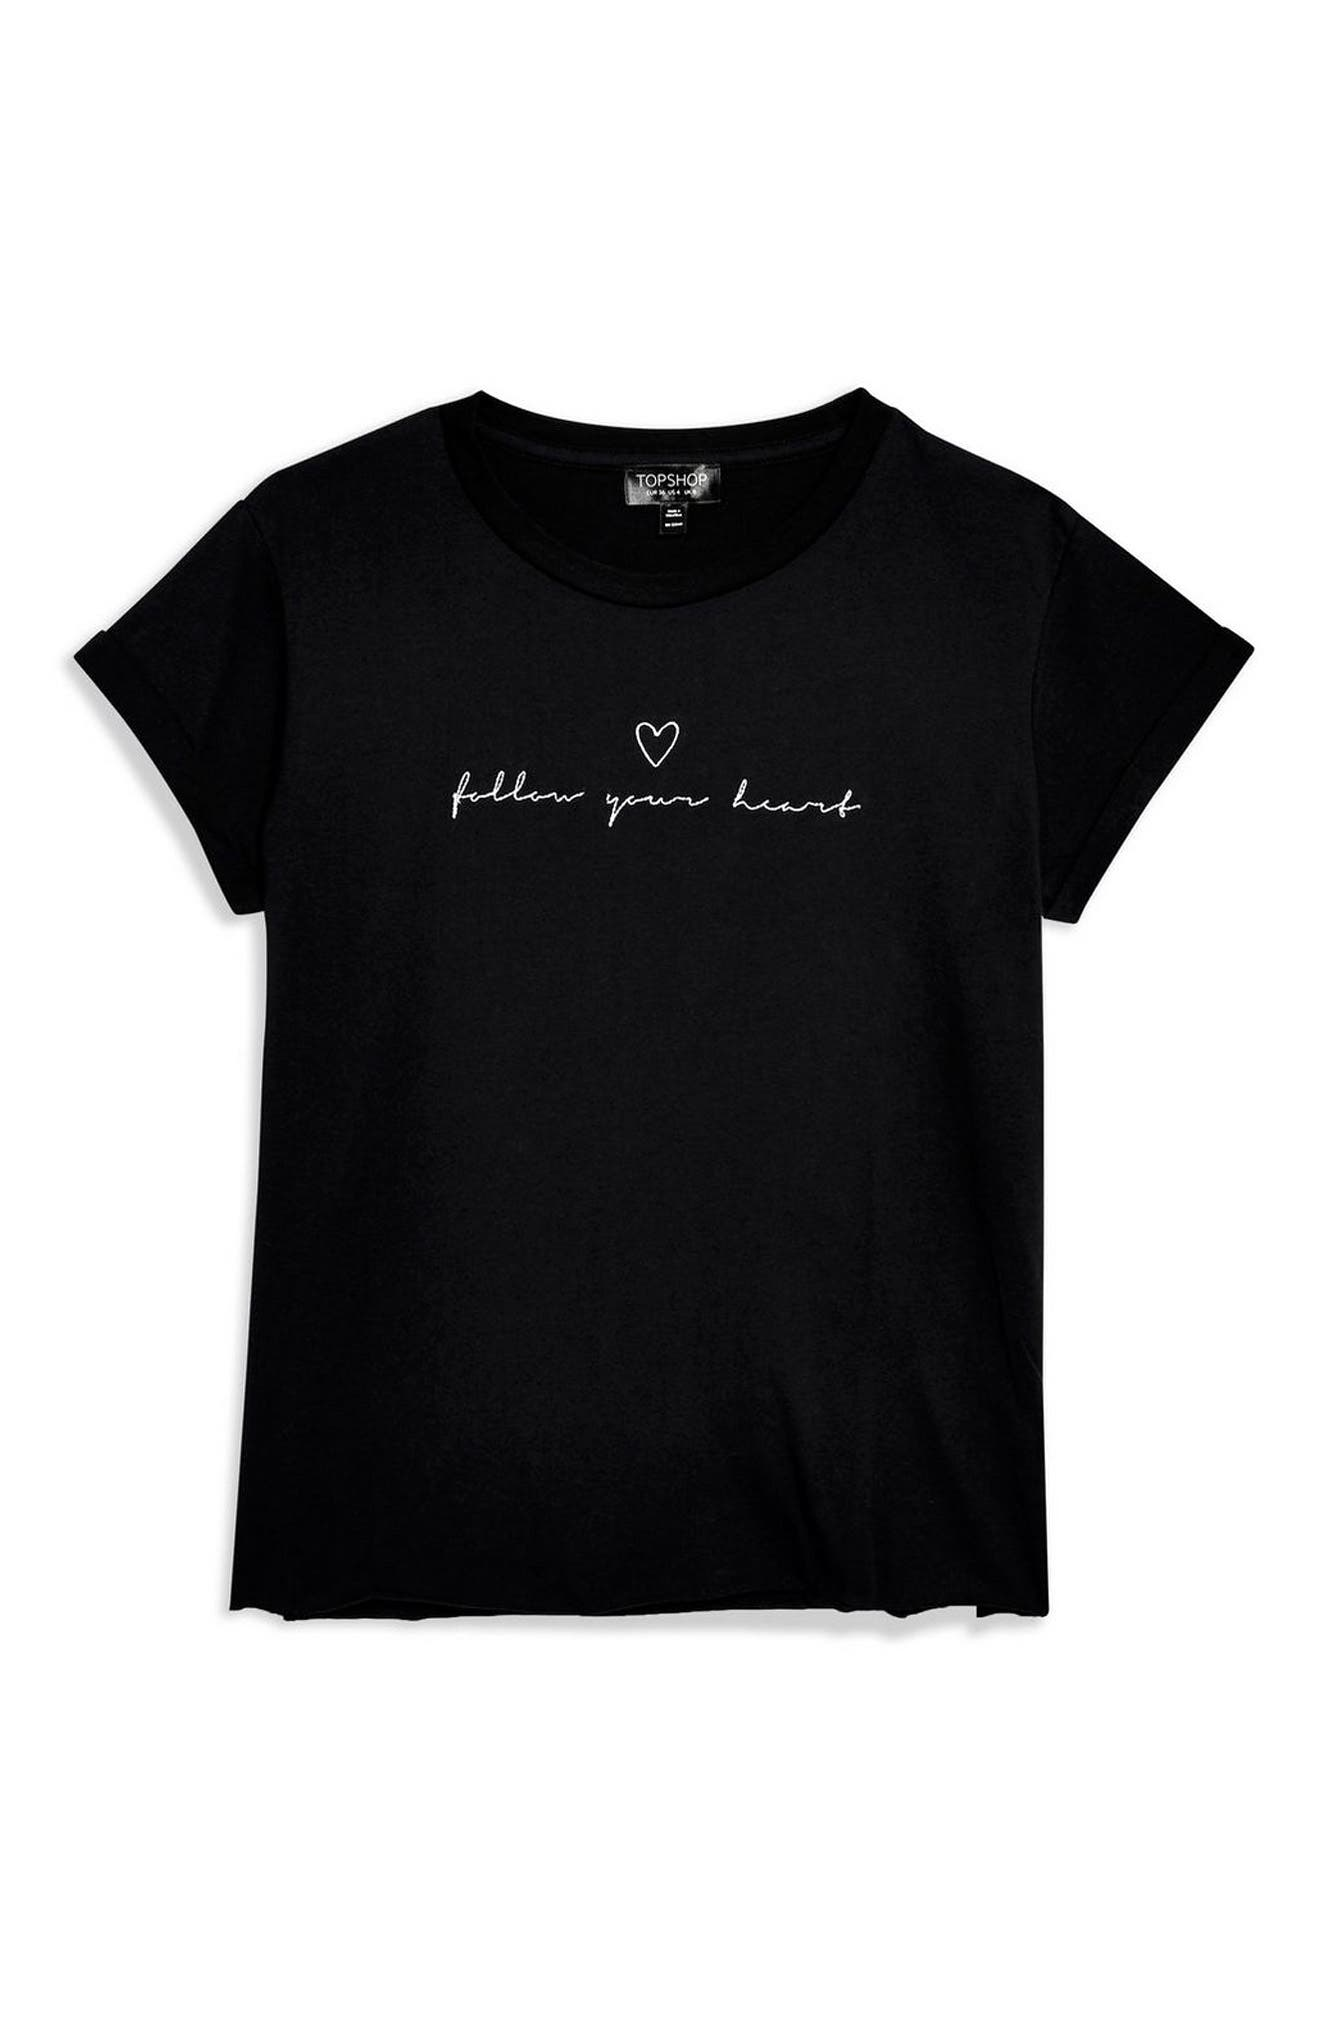 Follow Your Heart Tee,                             Alternate thumbnail 4, color,                             001